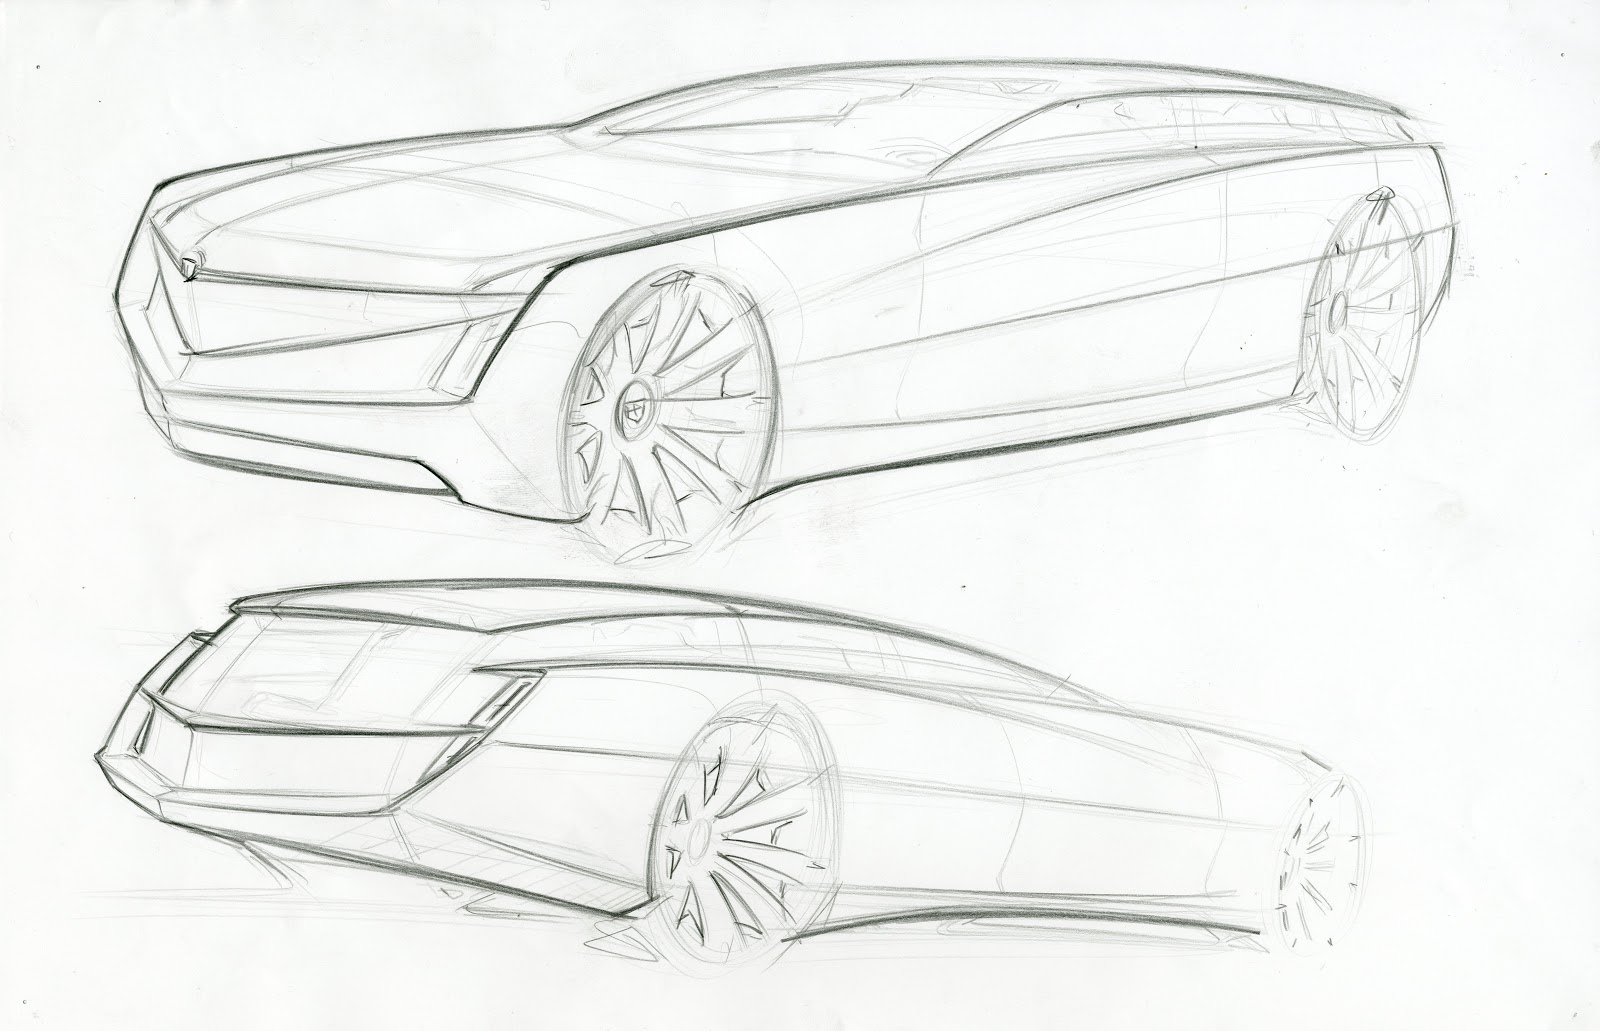 cadillac sketches